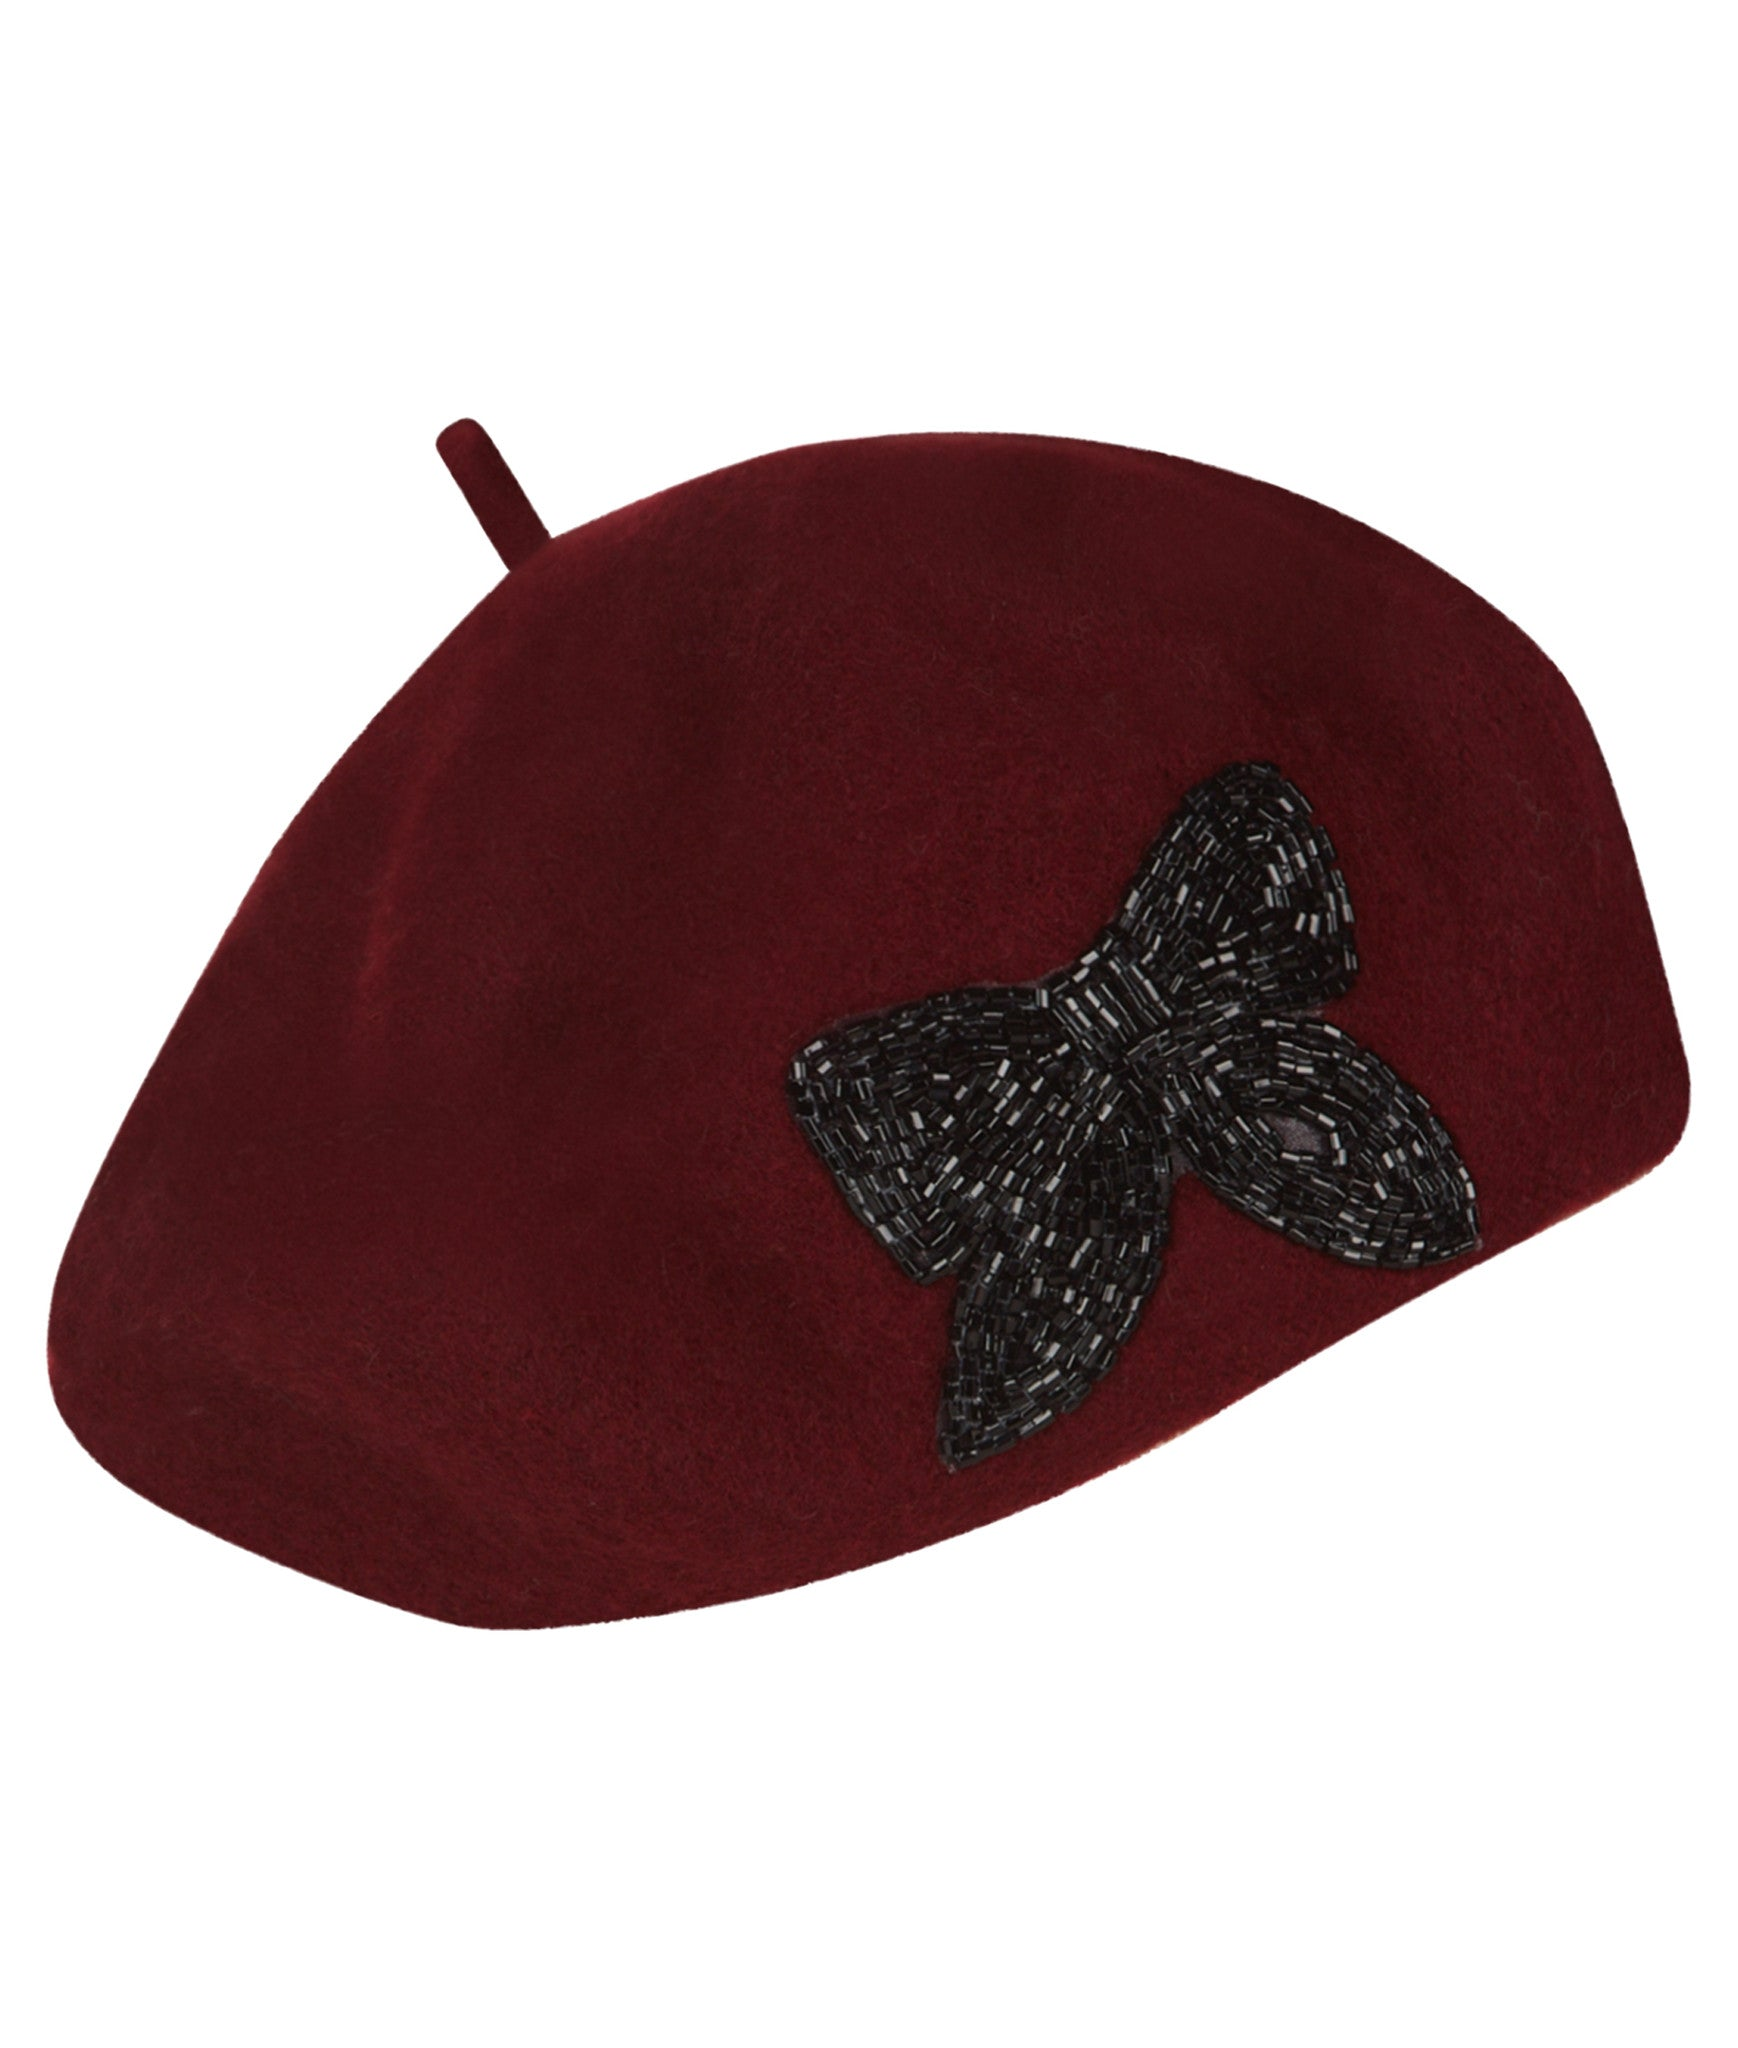 The Beret - Burgundy with Bow